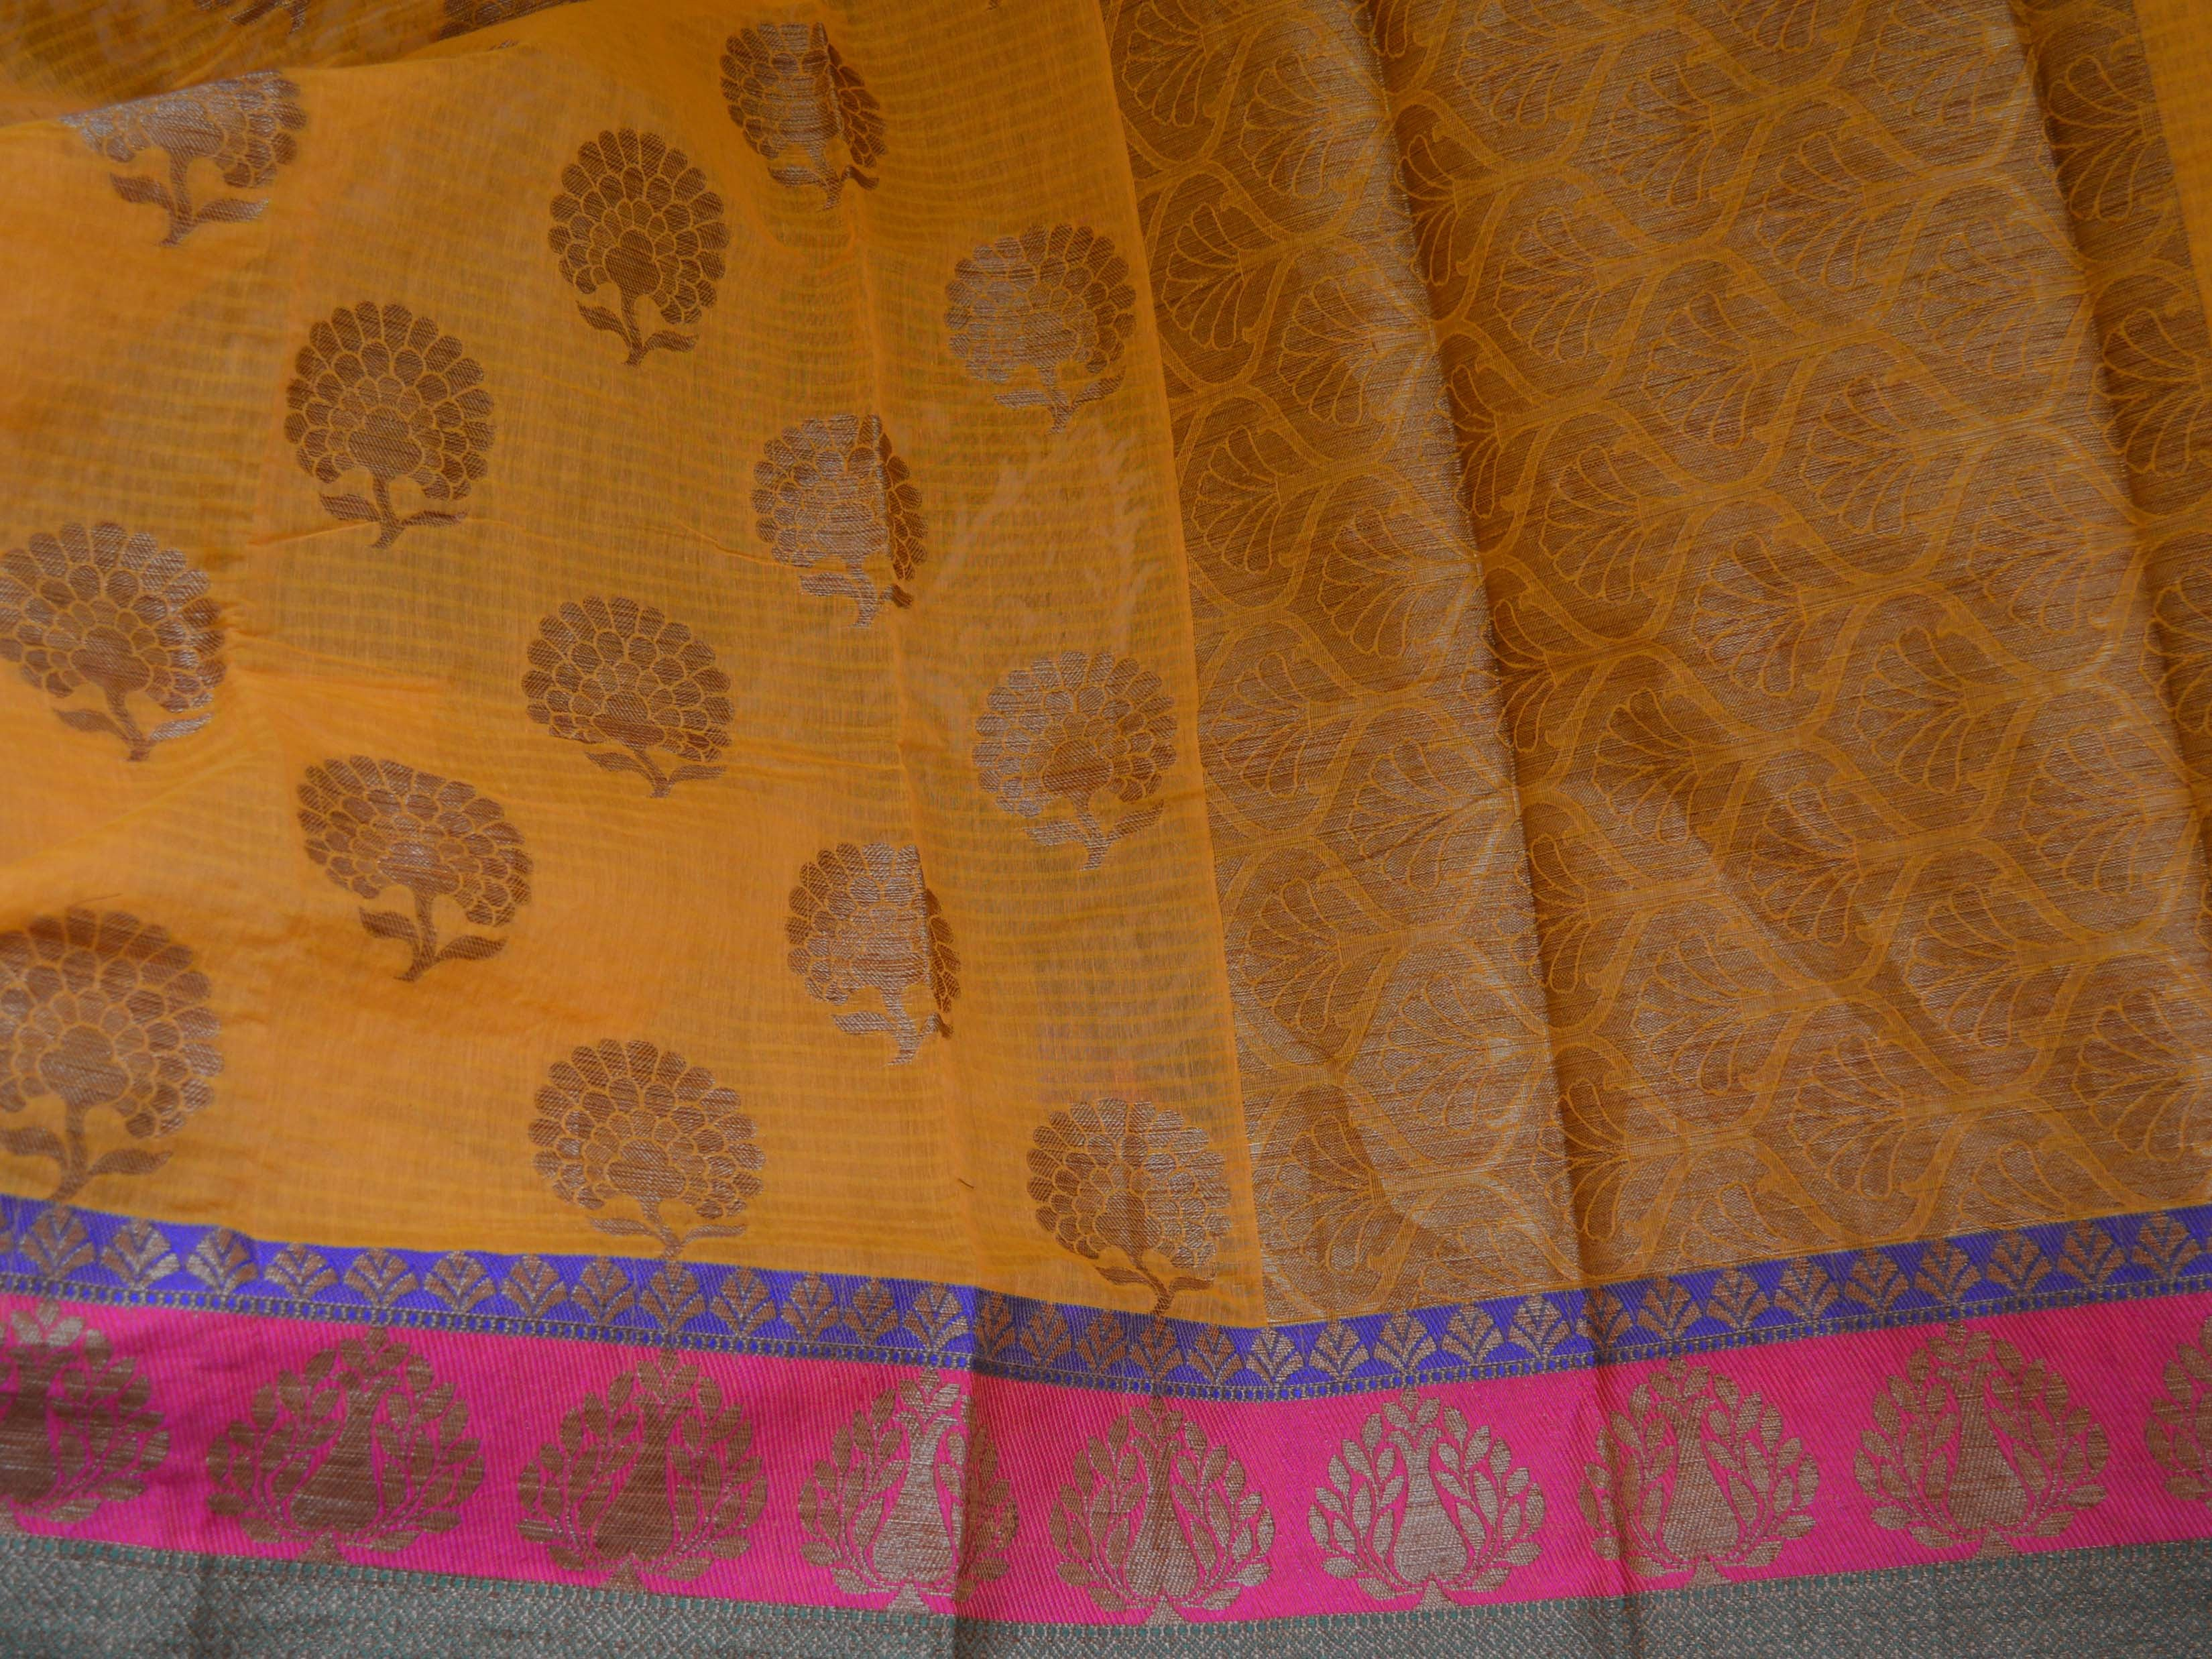 Banarasee/Banarasi Handloom Faux Dupion Silk Saree With Gold Zari Floral Motif Border-Yellow